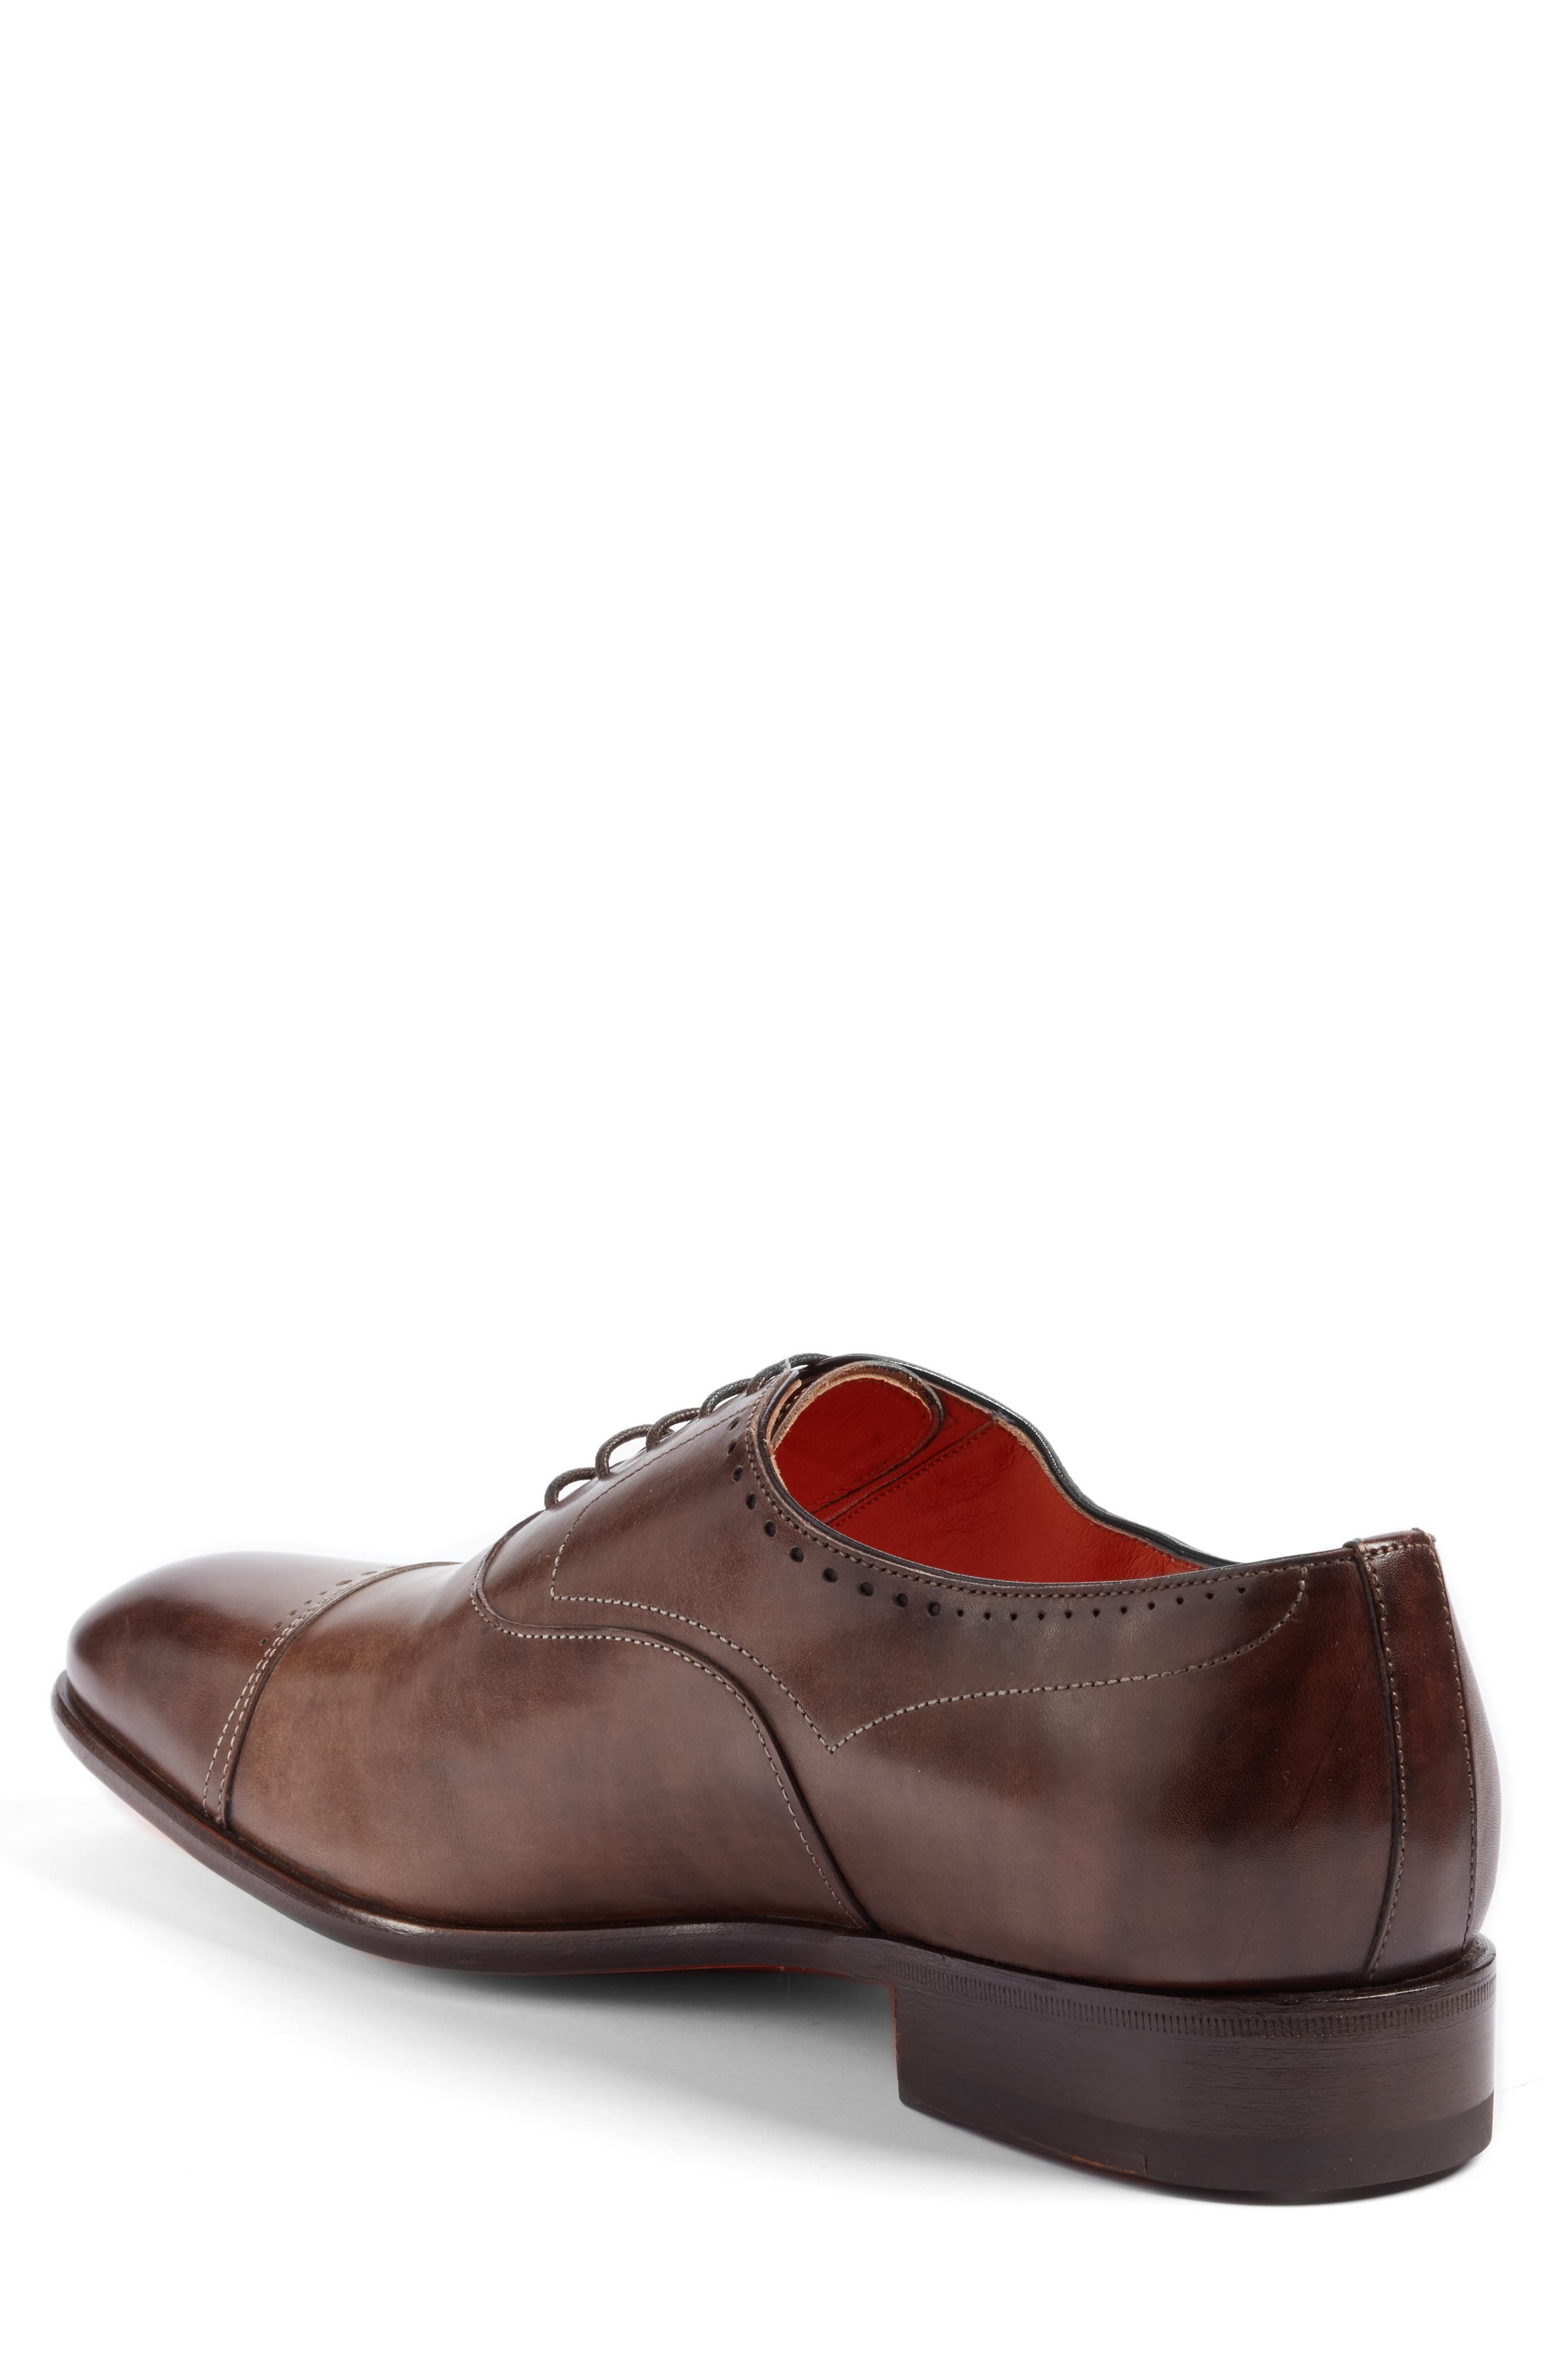 Thurman Cap Toe Oxford,                             Alternate thumbnail 2, color,                             Dark Brown Leather